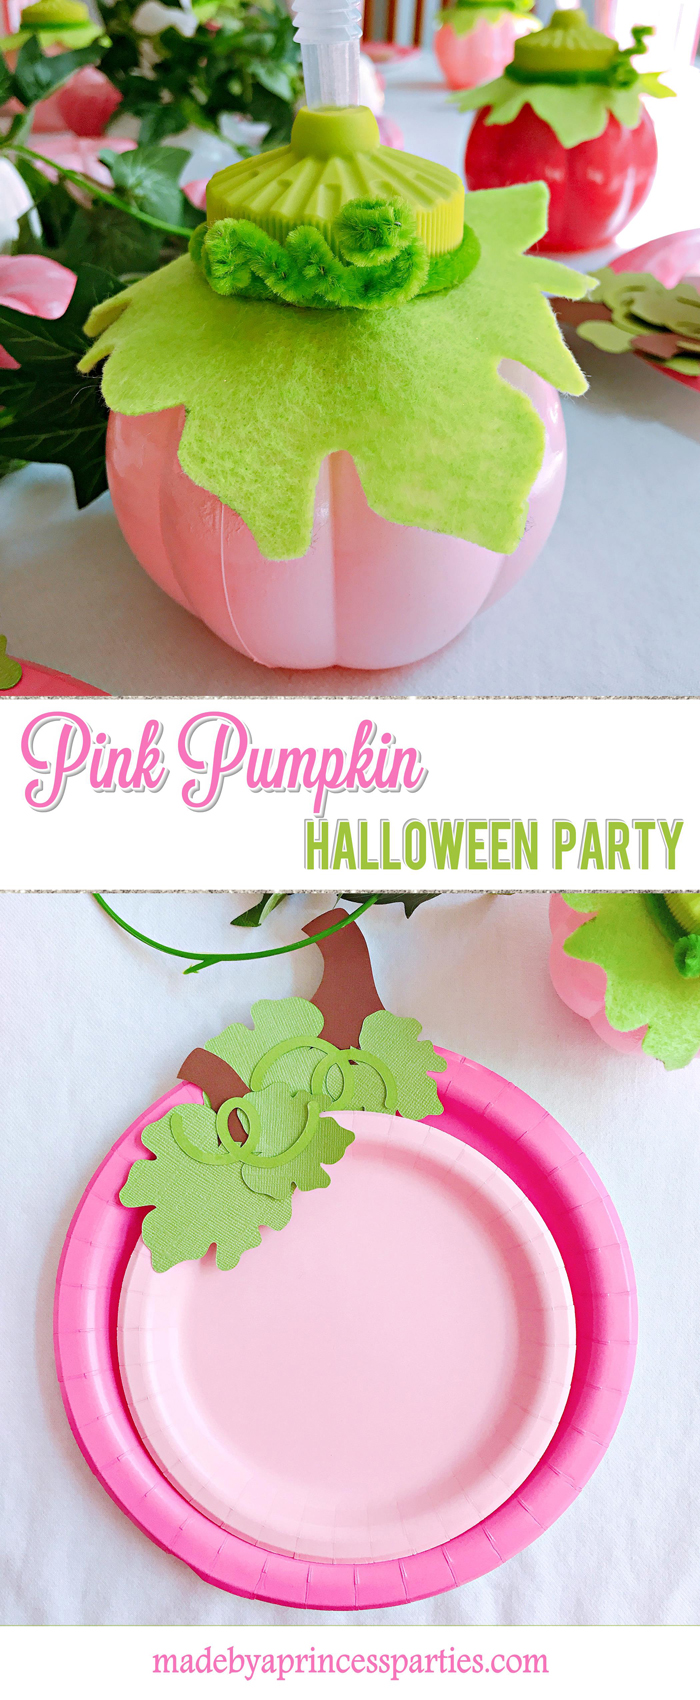 Pink Pumpkin Halloween Party Ideas inspired by Pinkalicious and the Pink Pumpkin Made by a Princess #pinkparty #pinkoween #pinkpumpkinparty